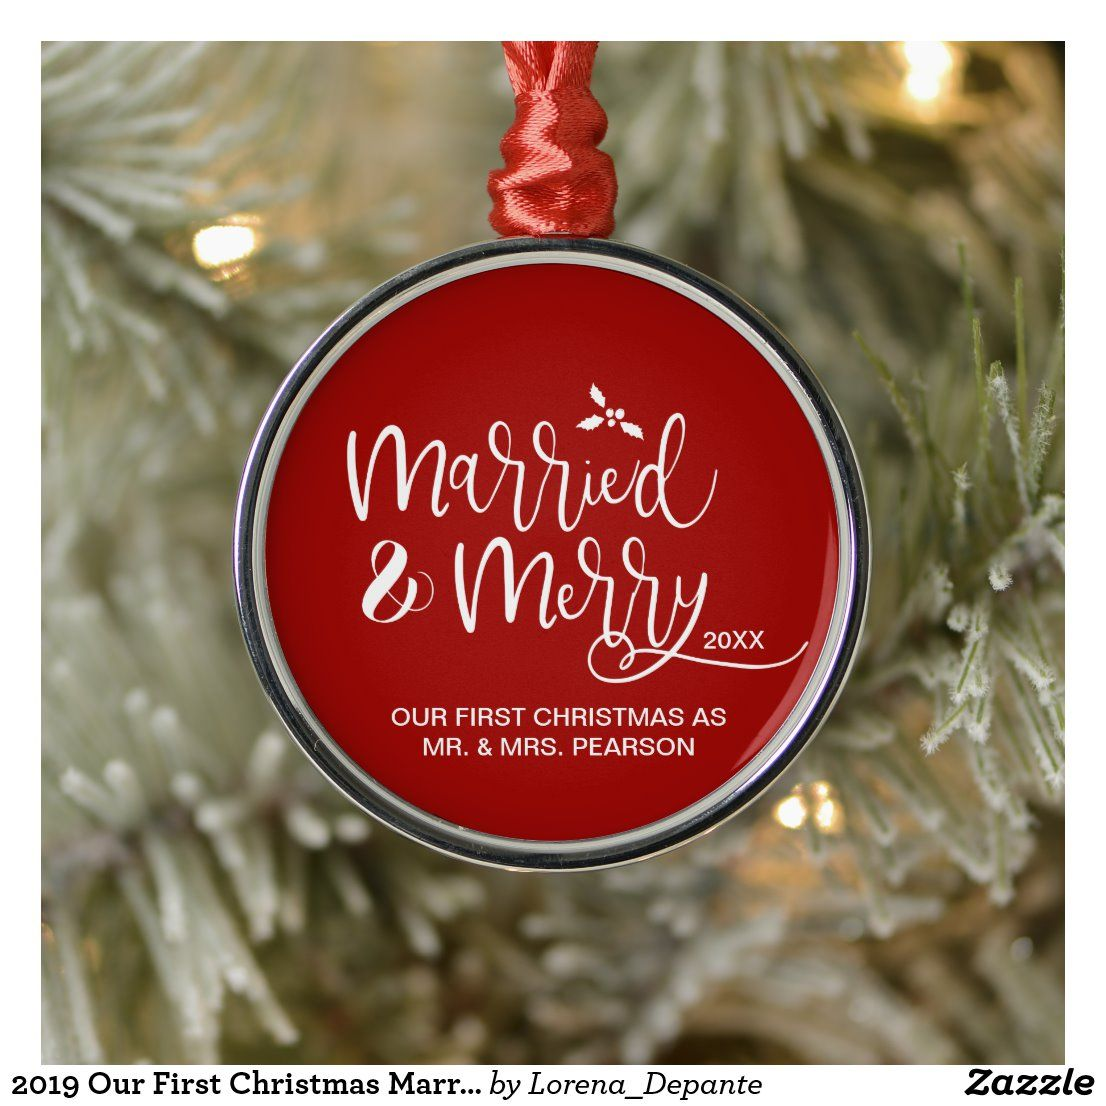 2020 Our First Christmas Married Merry Red Metal Ornament